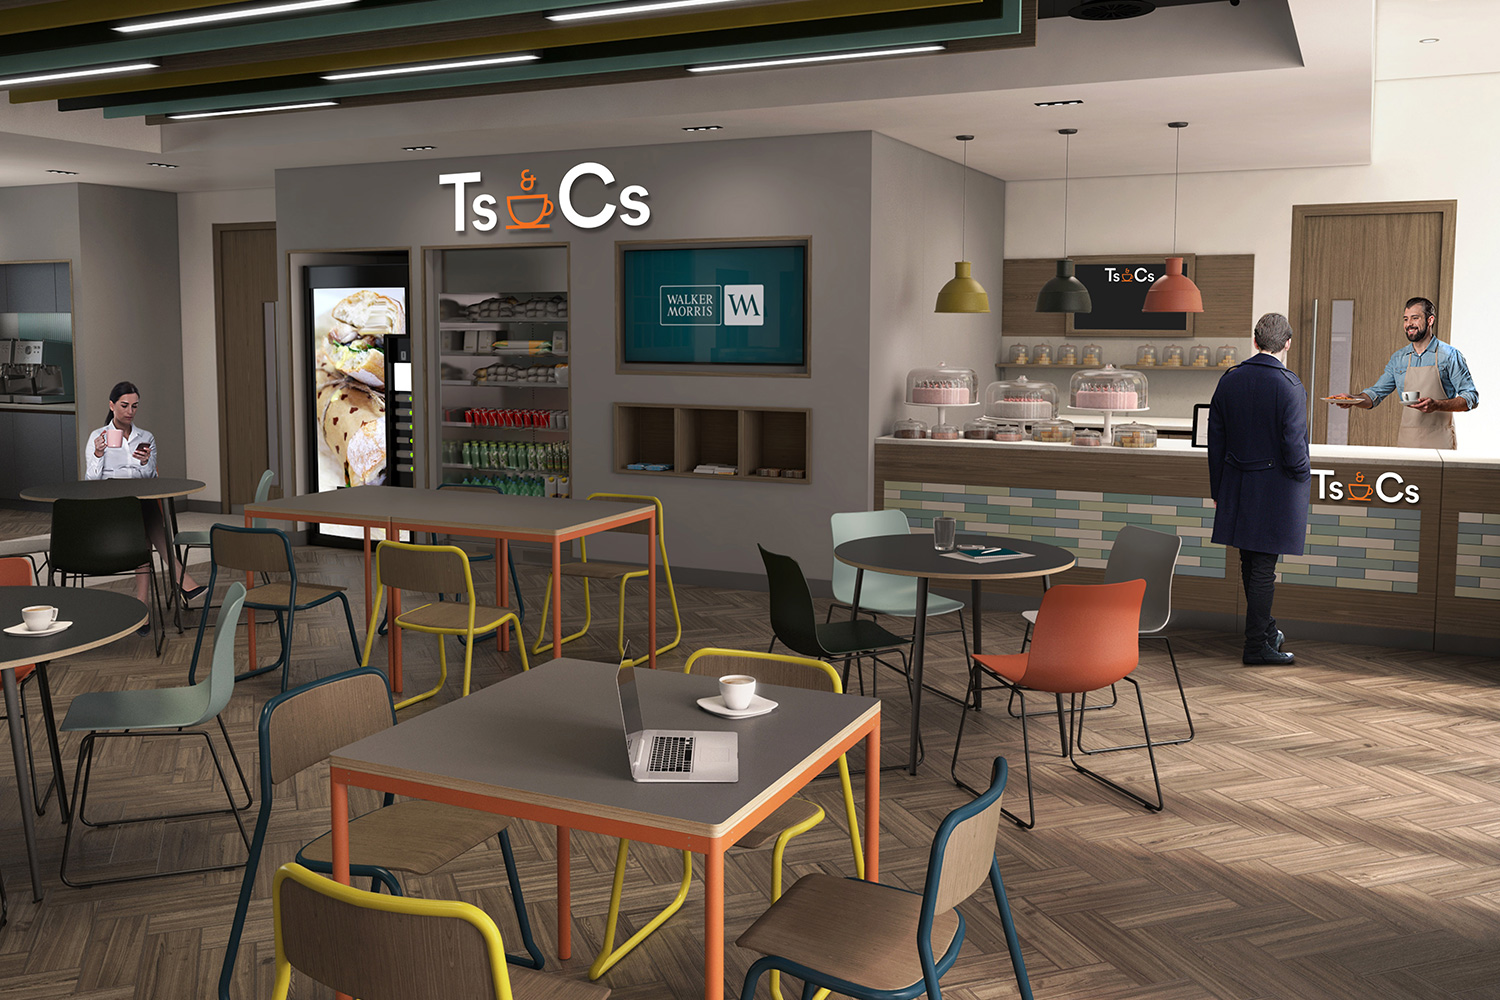 CGI visualisation Cafe servery area with blackboard, TV and vending machine